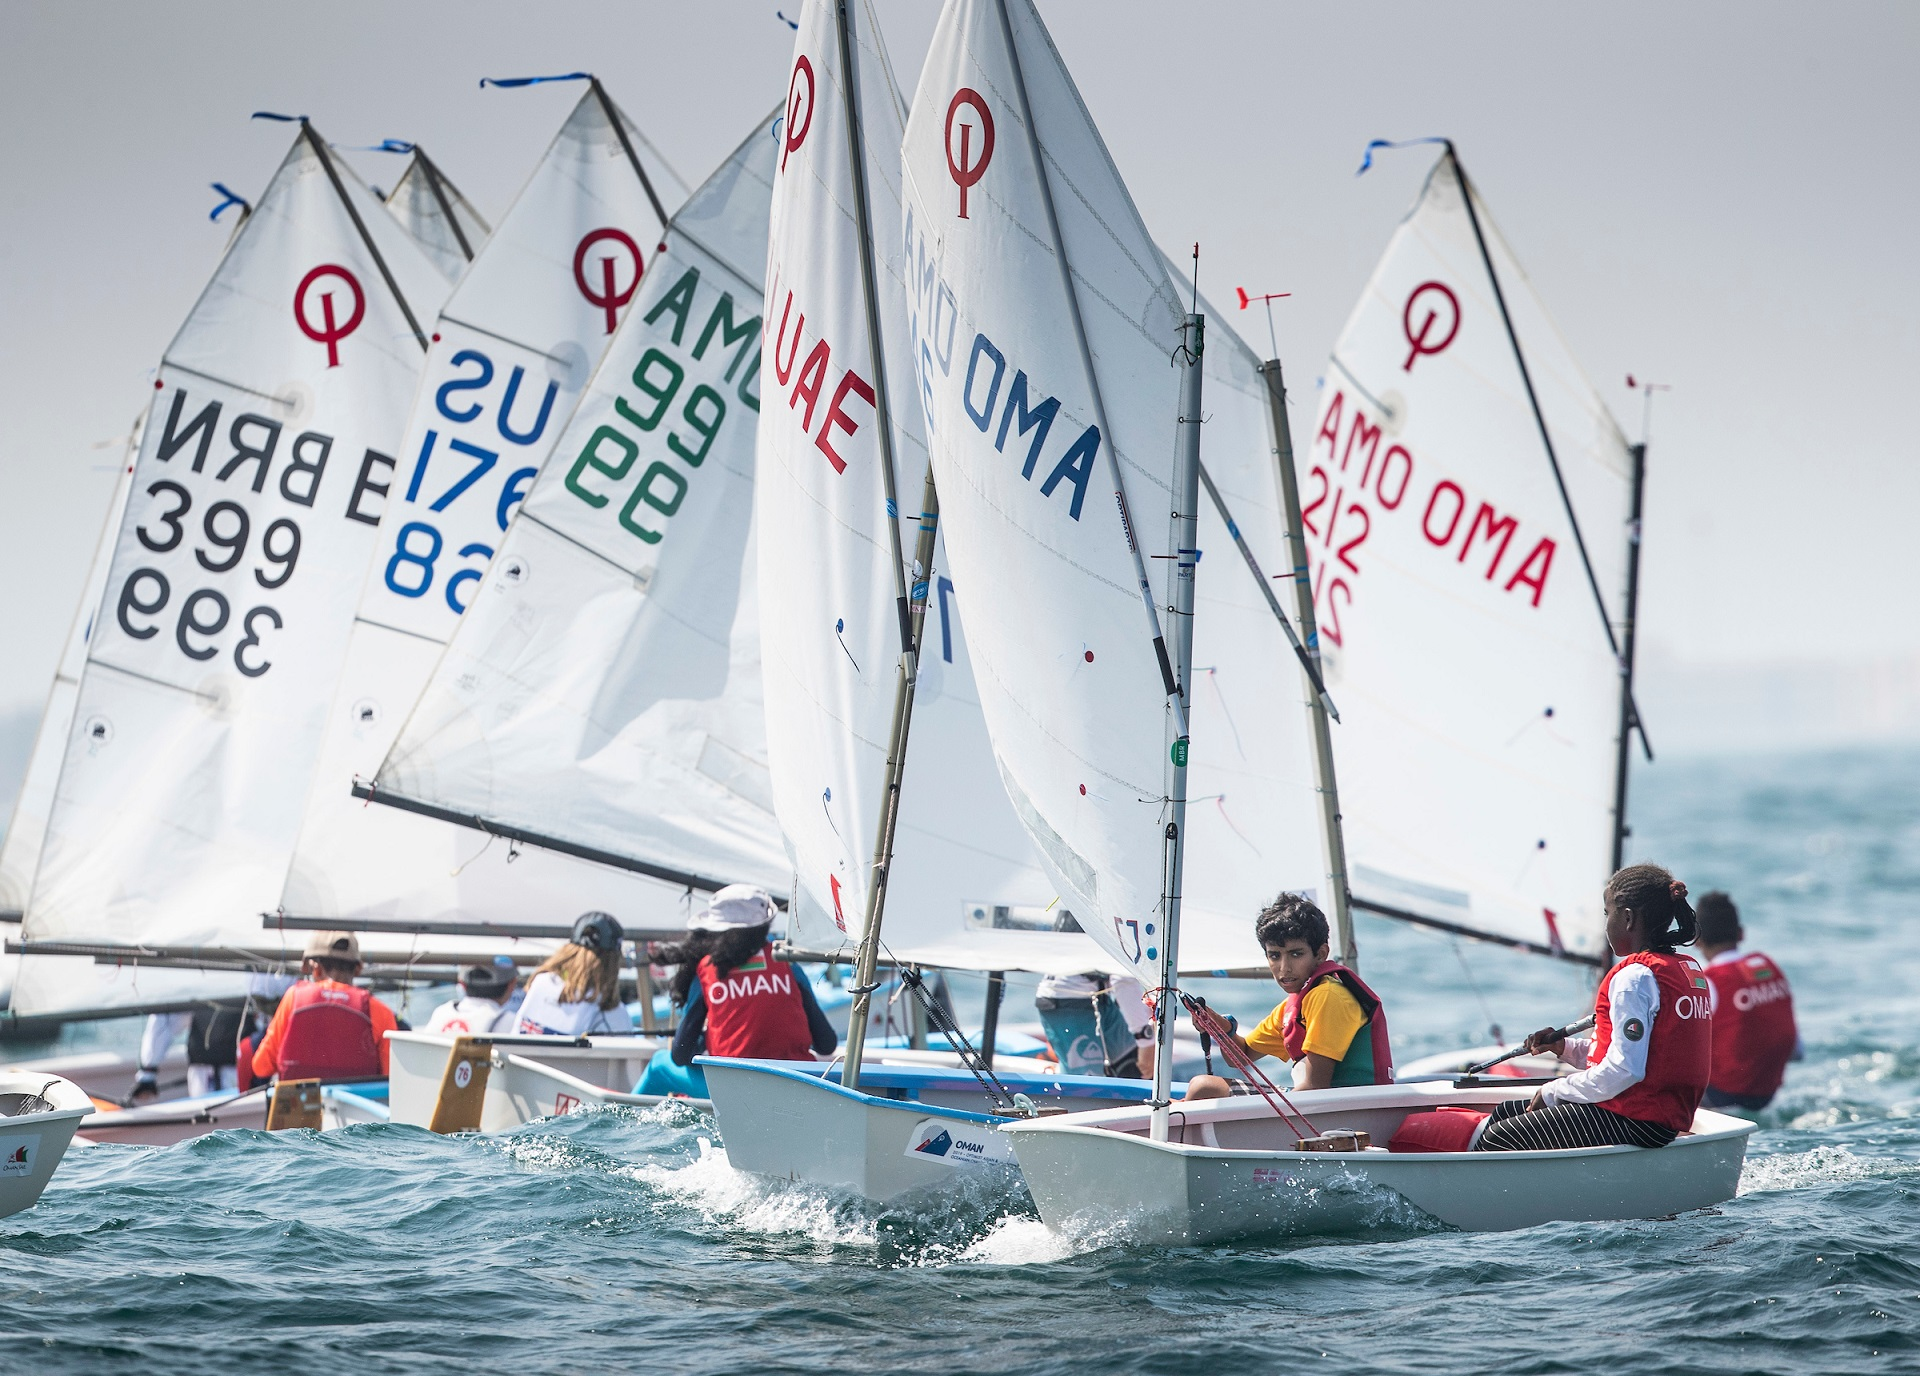 International Optimist championship gets off to a flying start in Oman